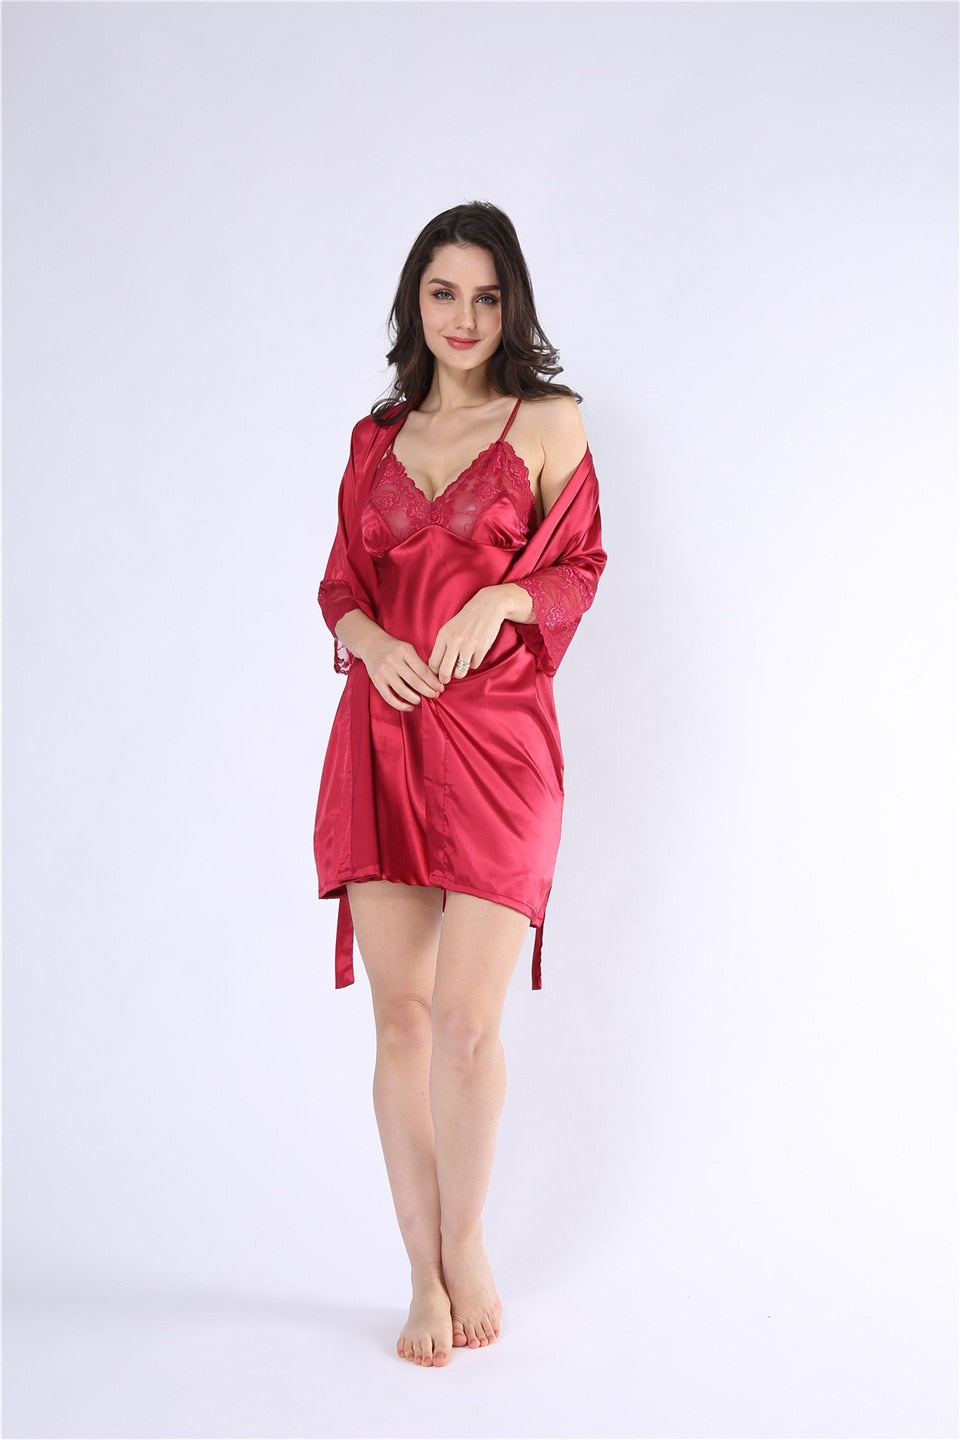 Sheer Bliss- Satin/Lace Robe & Night Gown